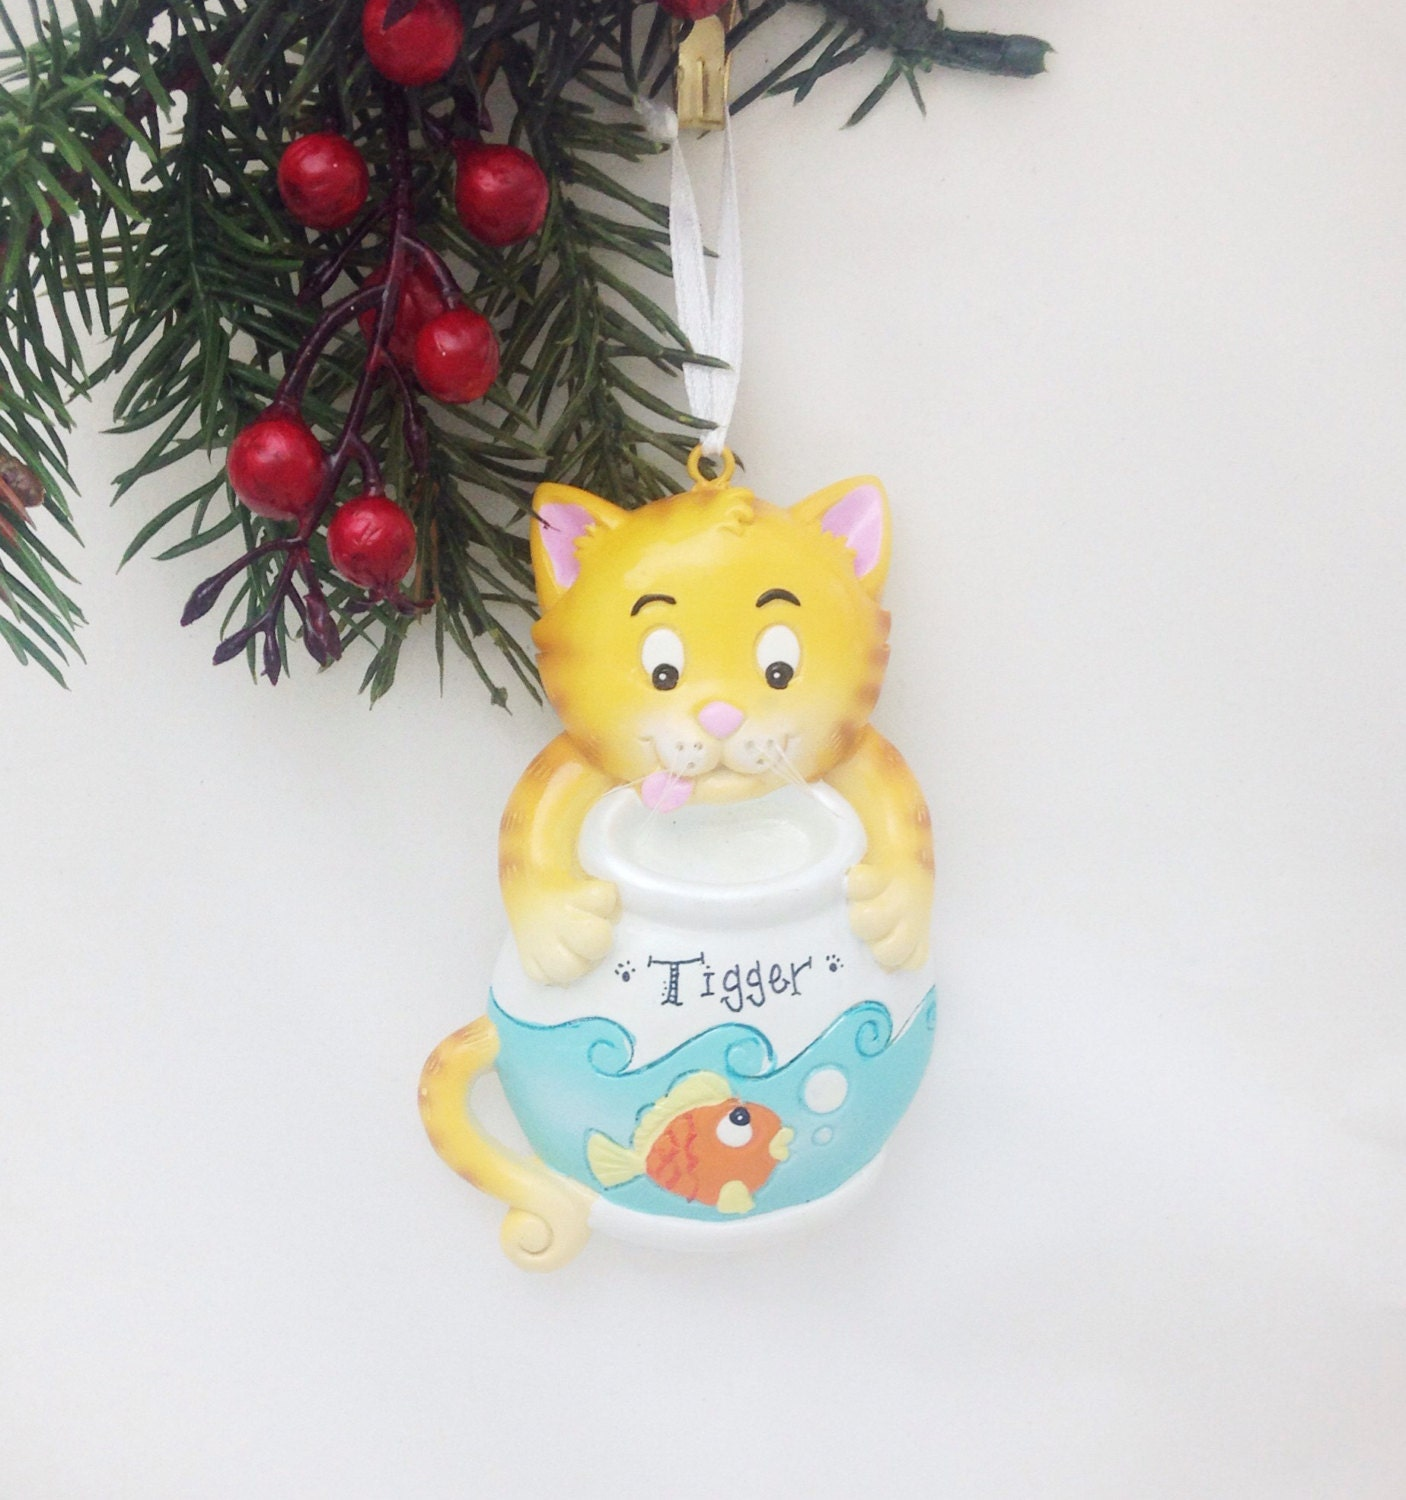 Personalized cat christmas ornaments - Clearance Personalized Cat Christmas Ornament Yellow Cat With A Goldfish Bowl Ornament Kitty Ornament Personalized Ornament